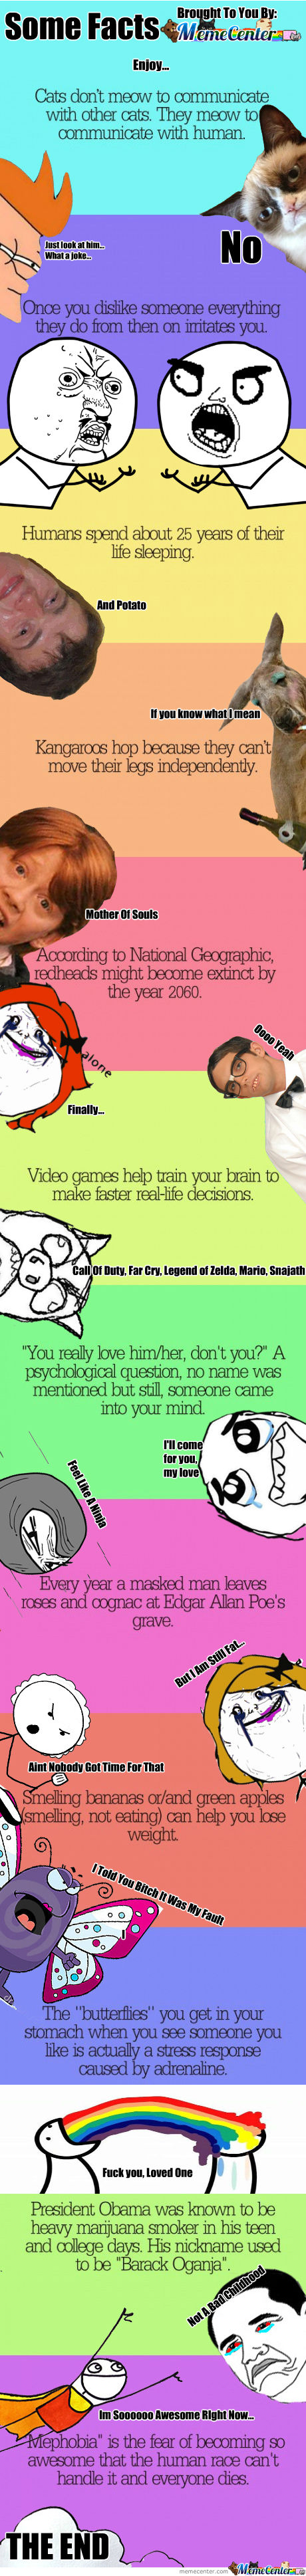 Here Are Some Random Facts For You Guys